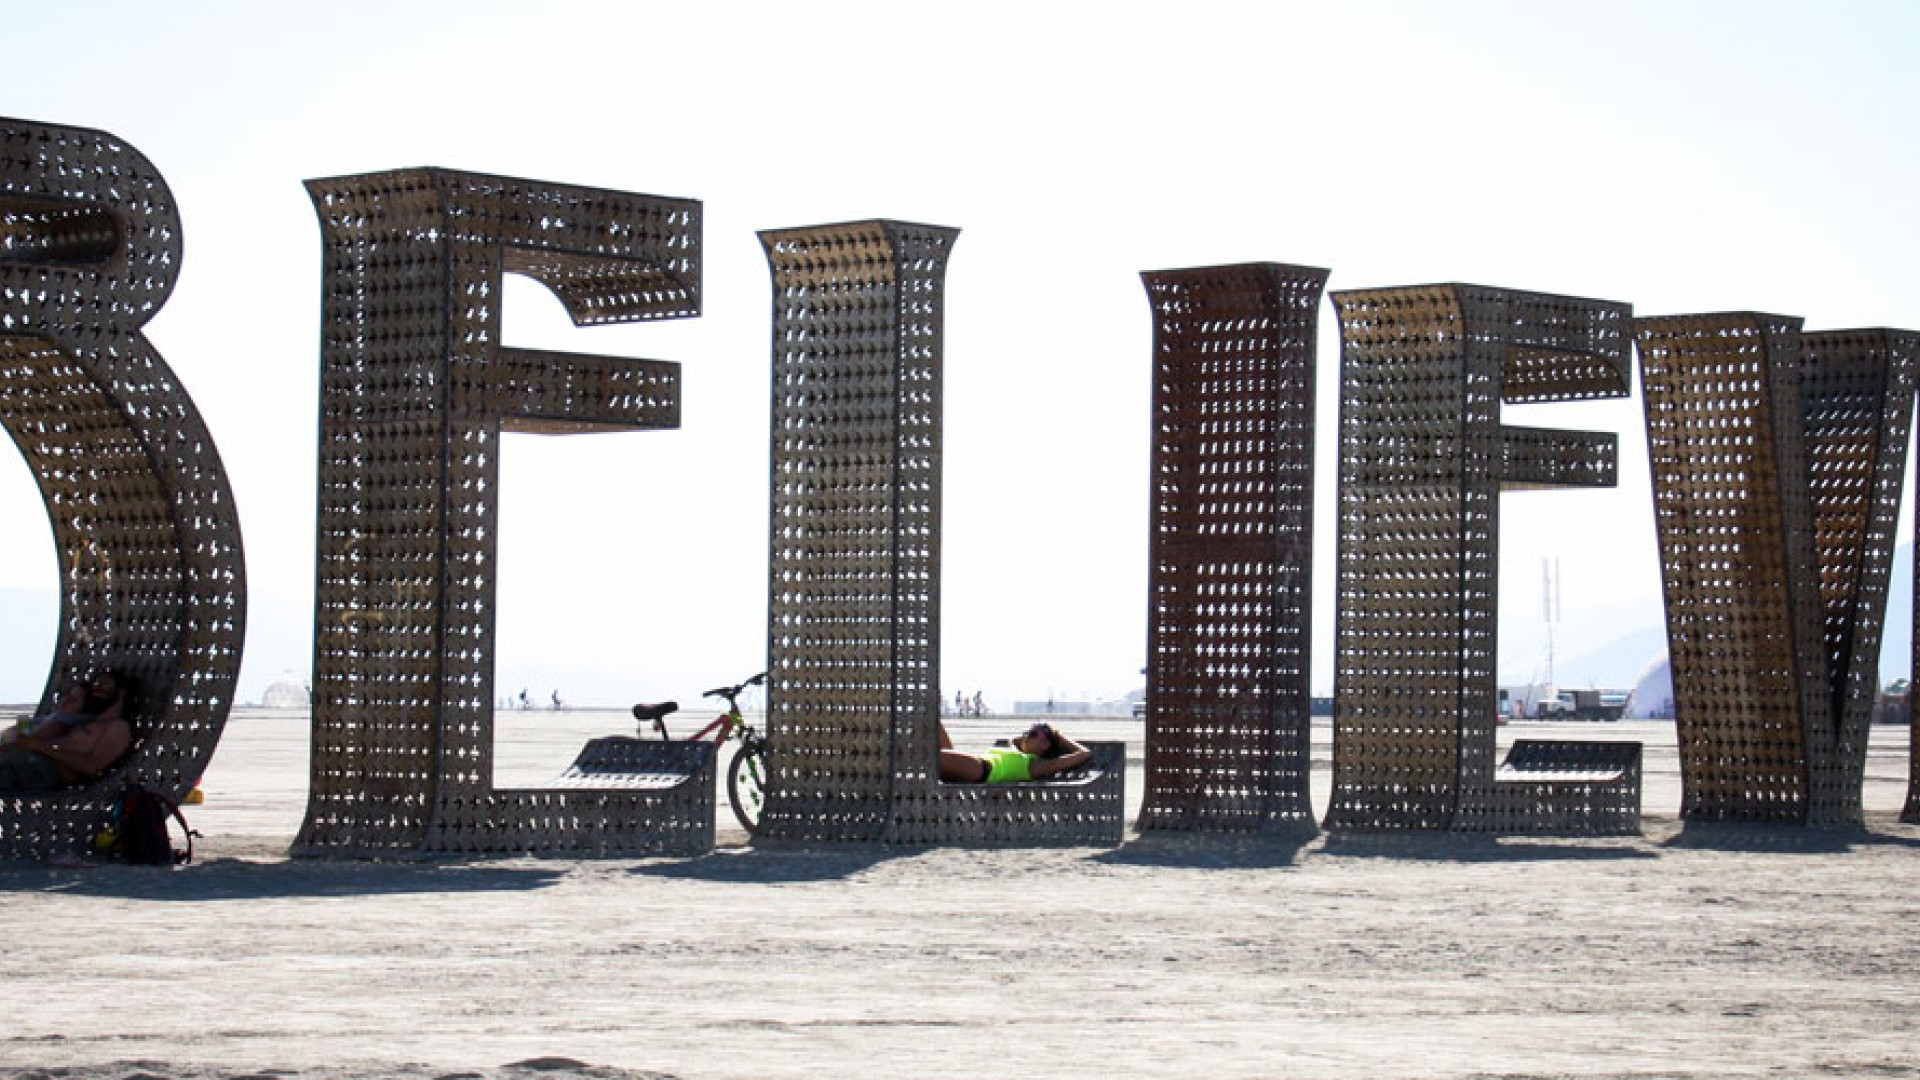 By dvsross (Burning Man 2013 )'( DVSROSS  Uploaded by russavia) [CC-BY-2.0 (http://creativecommons.org/licenses/by/2.0)], via Wikimedia Commons